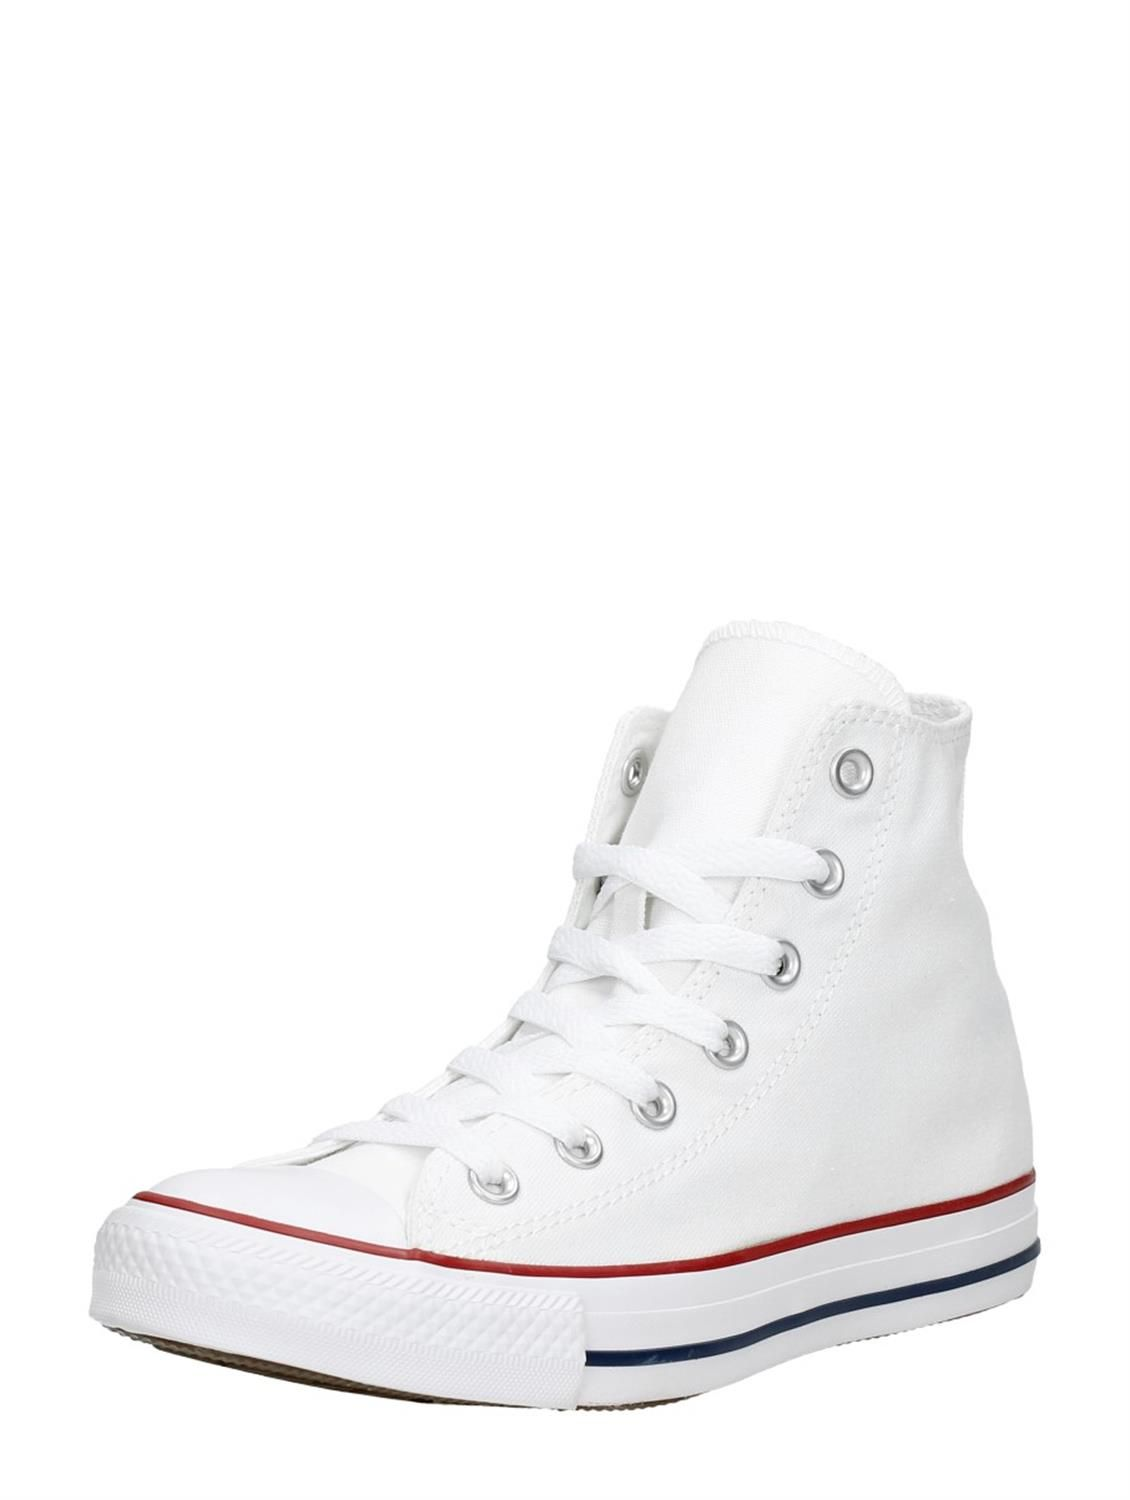 3d0108bb241 Converse Chuck Taylor All Star hoog wit dames | CONVERSE in 2019 ...